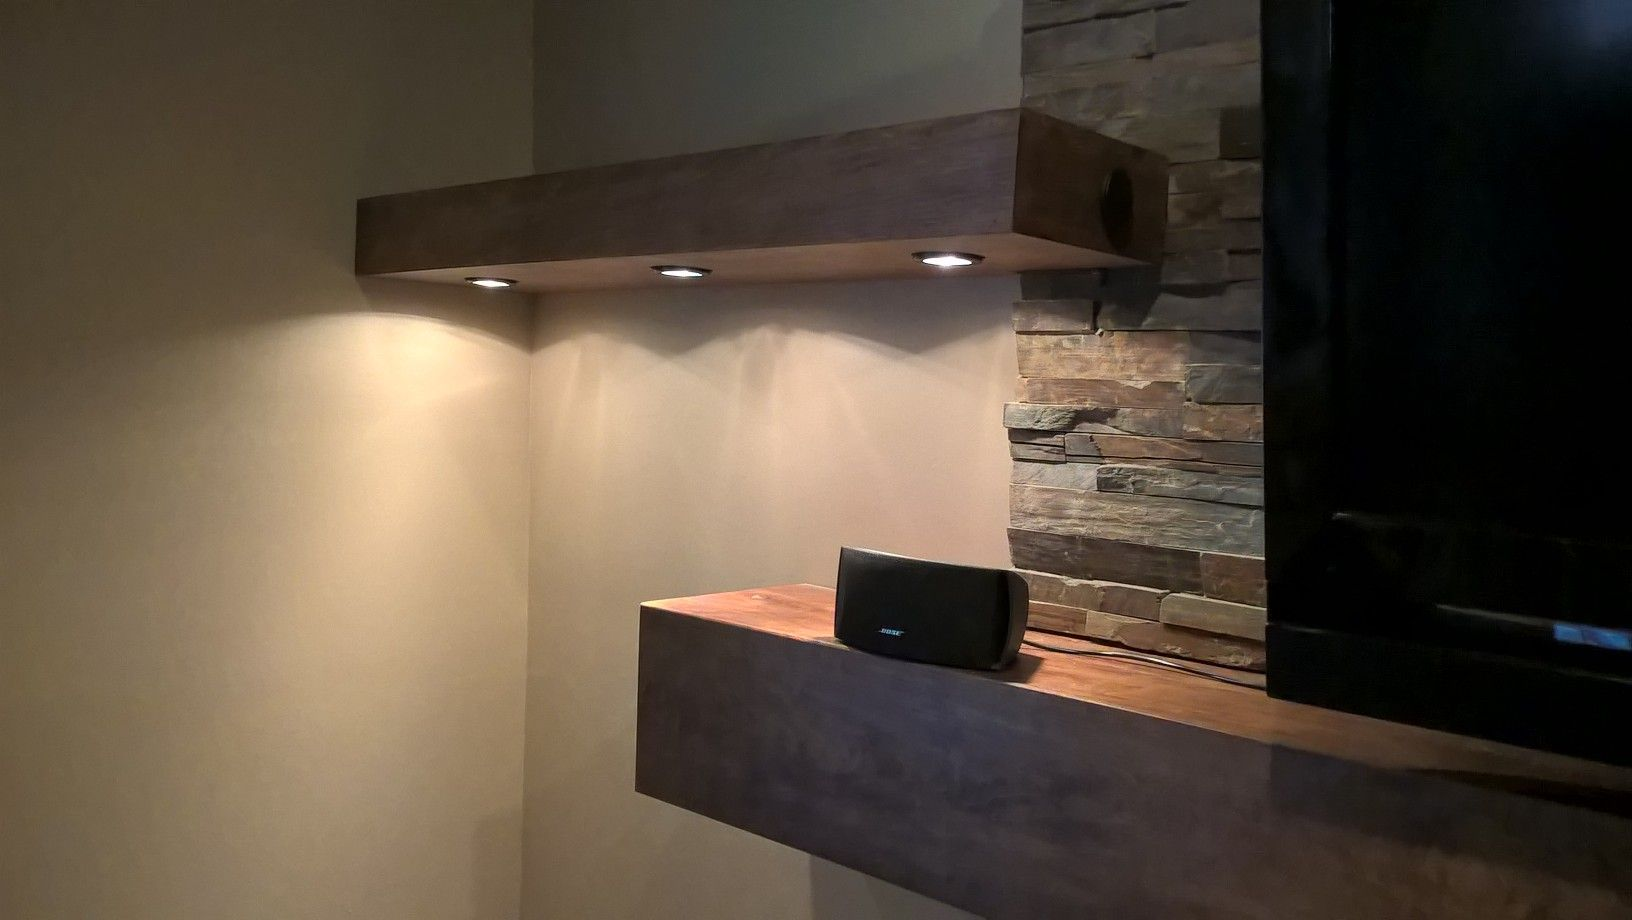 Floating Shelves With Recessed Dimmer Lights Floating Shelves Floating Shelves Bathroom